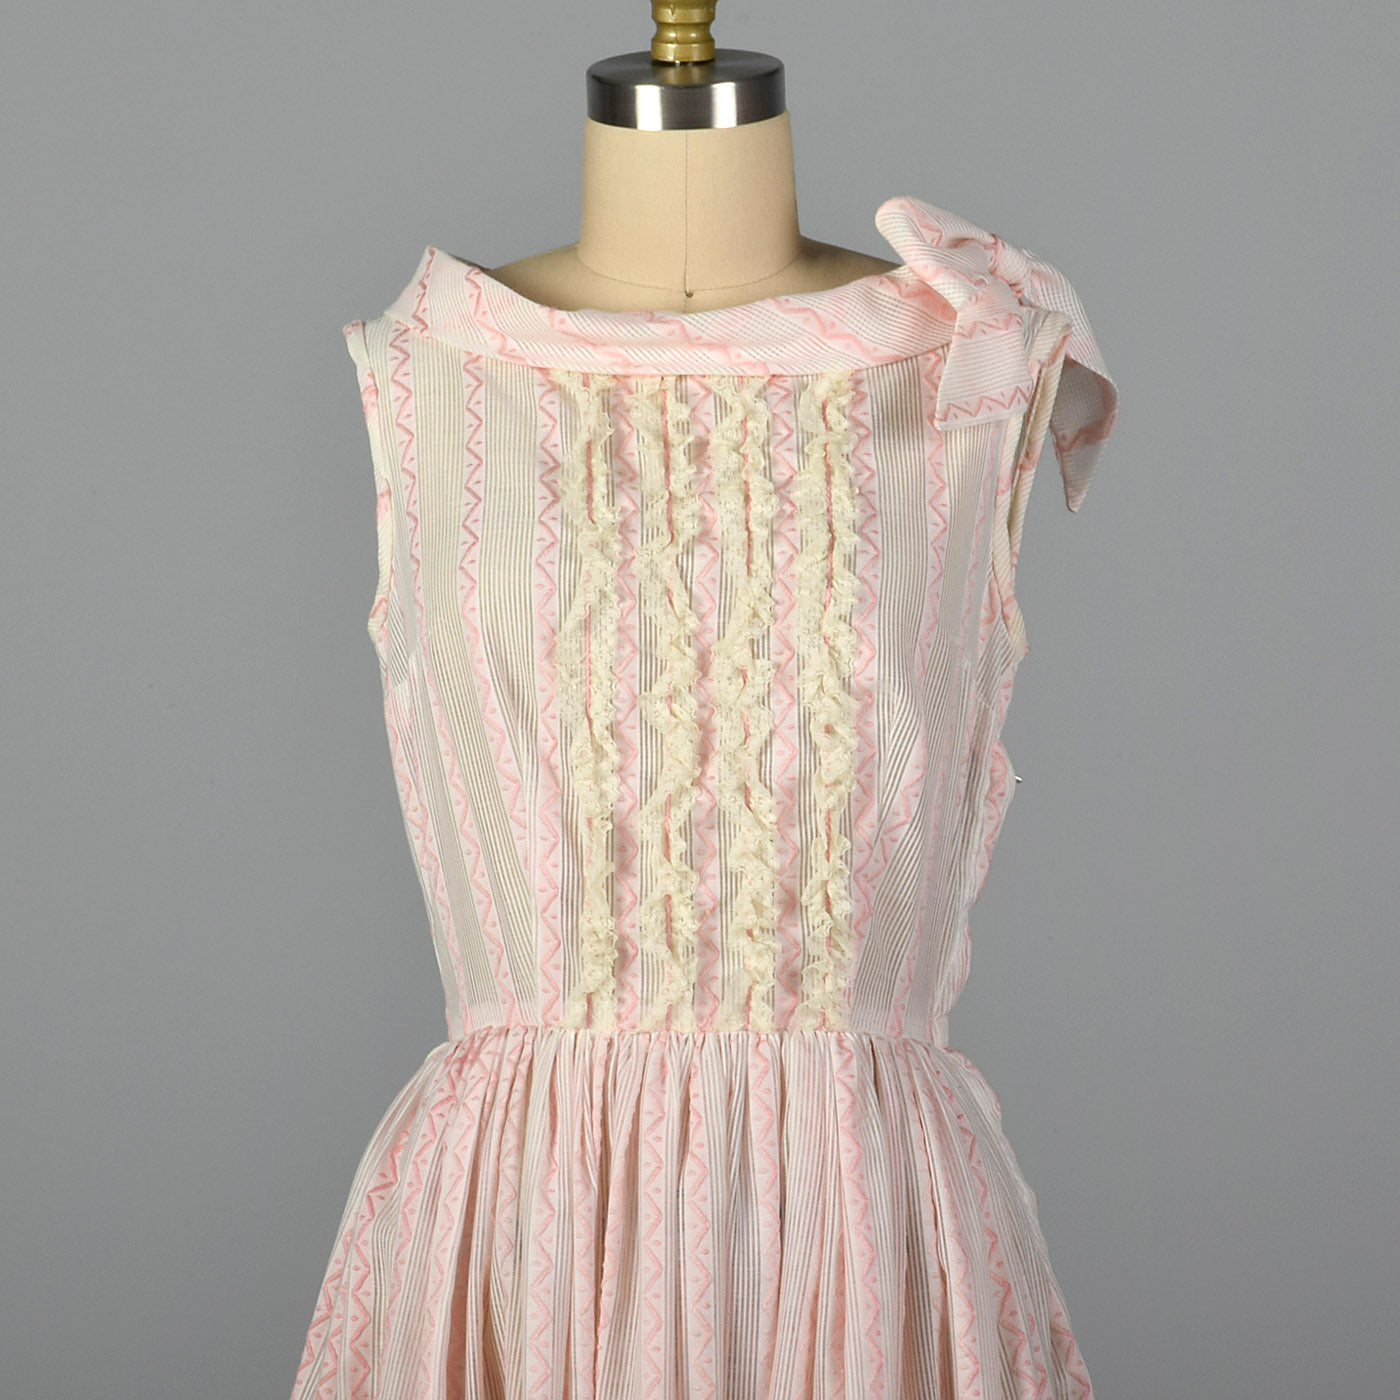 1950s Pink and White Sheer Day Dress